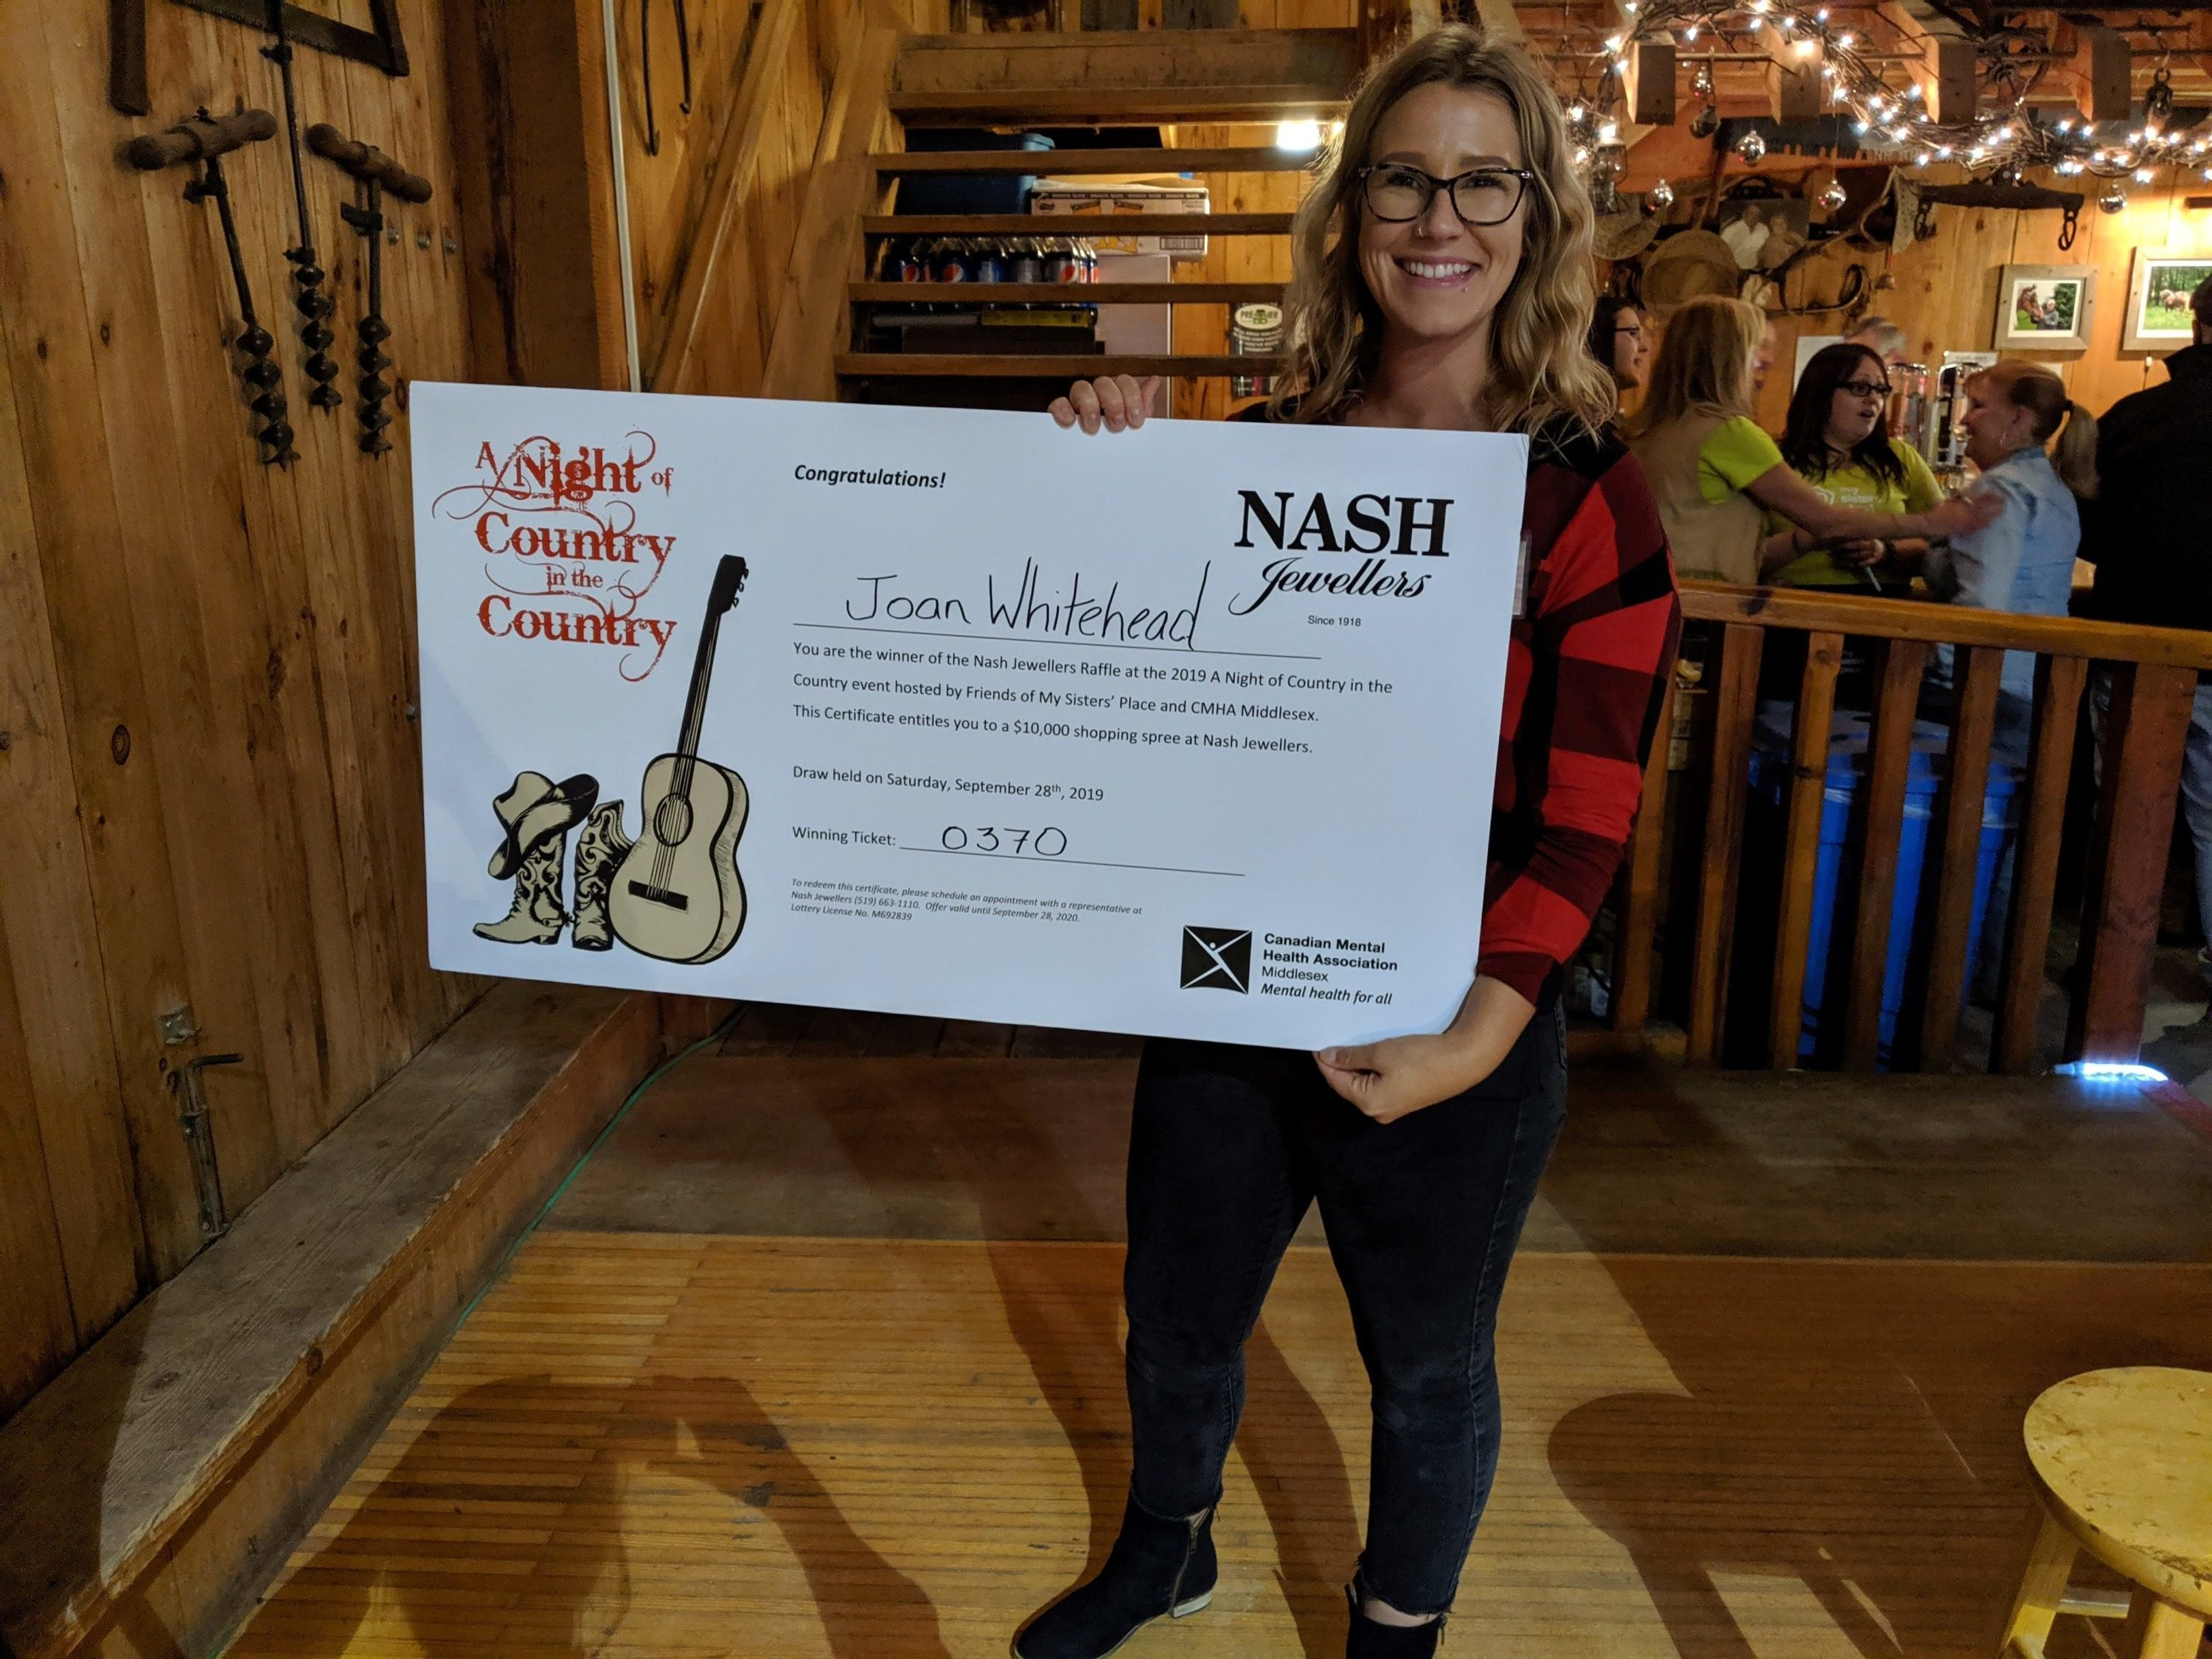 Moria Byrne accepting $10,000 Nash Jewellers Shopping Spree on behalf of winner, Joan Whitehead